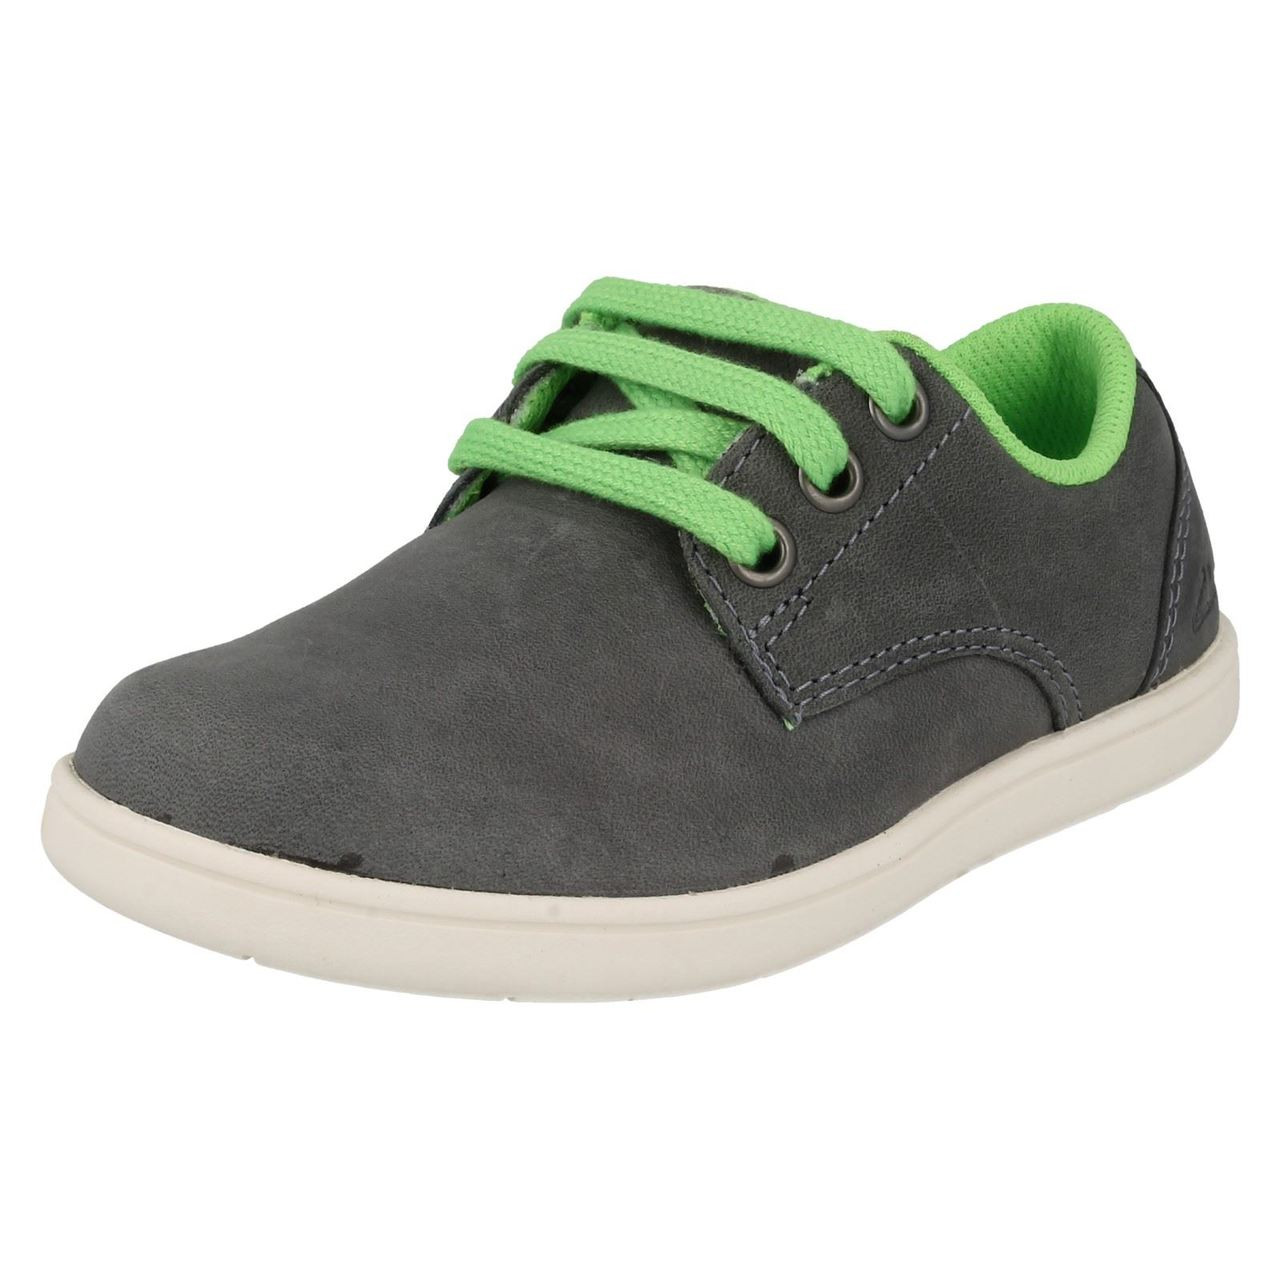 Cloud Swing Clarks Boys Casual Shoes